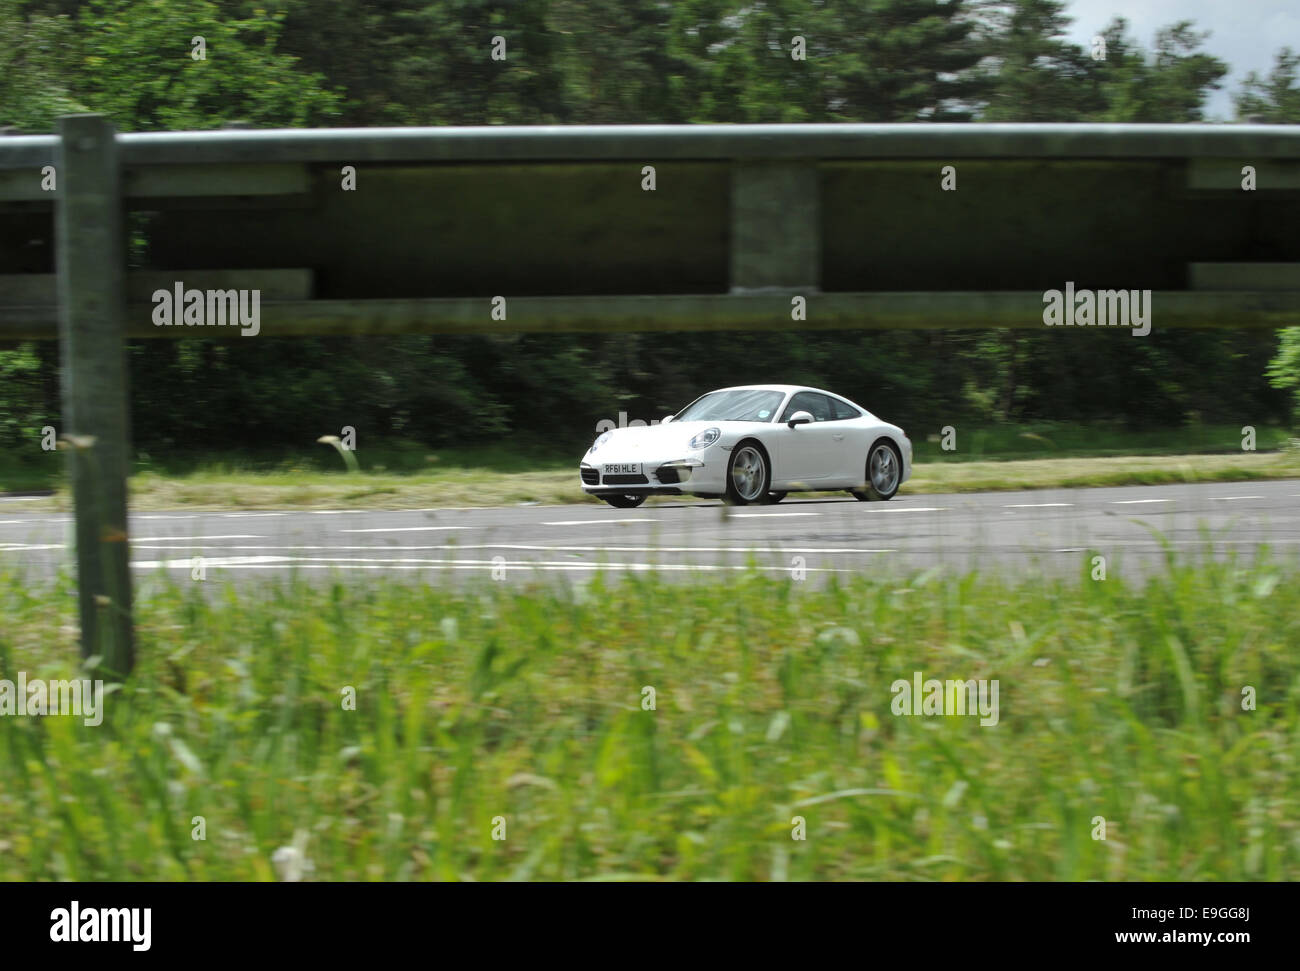 Porsche 911 rear engined German sports car - Stock Image